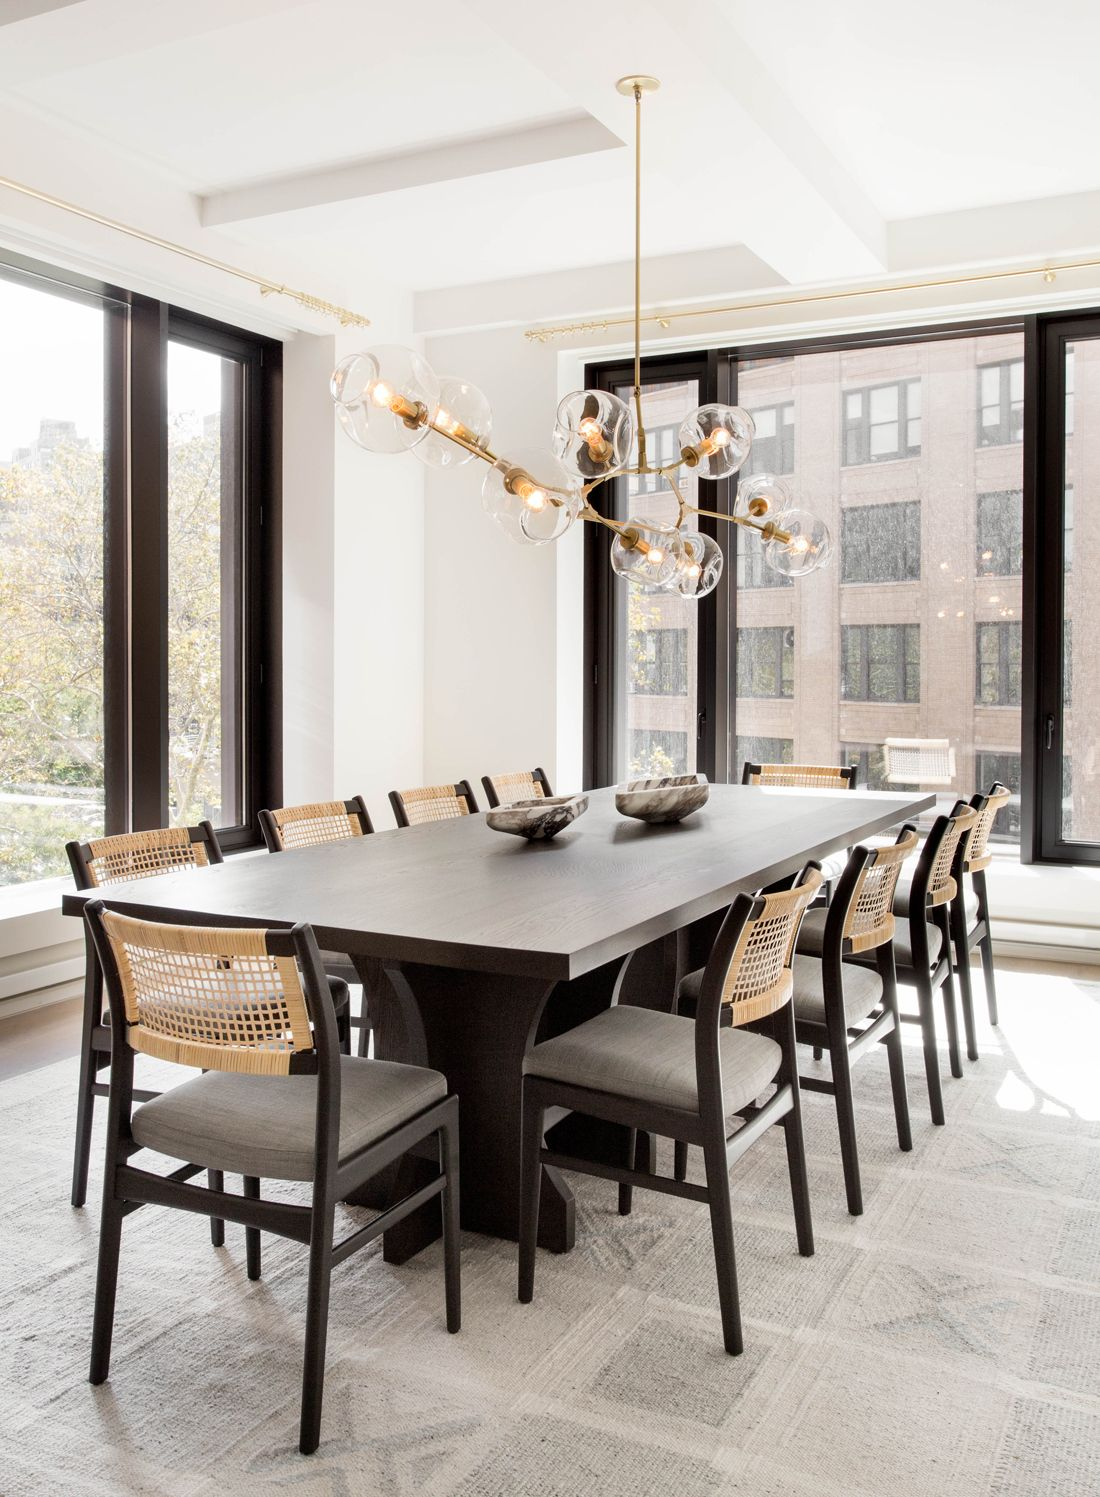 13 Contemporary Dining Room Ideas That Promise to Transport Your Space Into the Present | Hunker